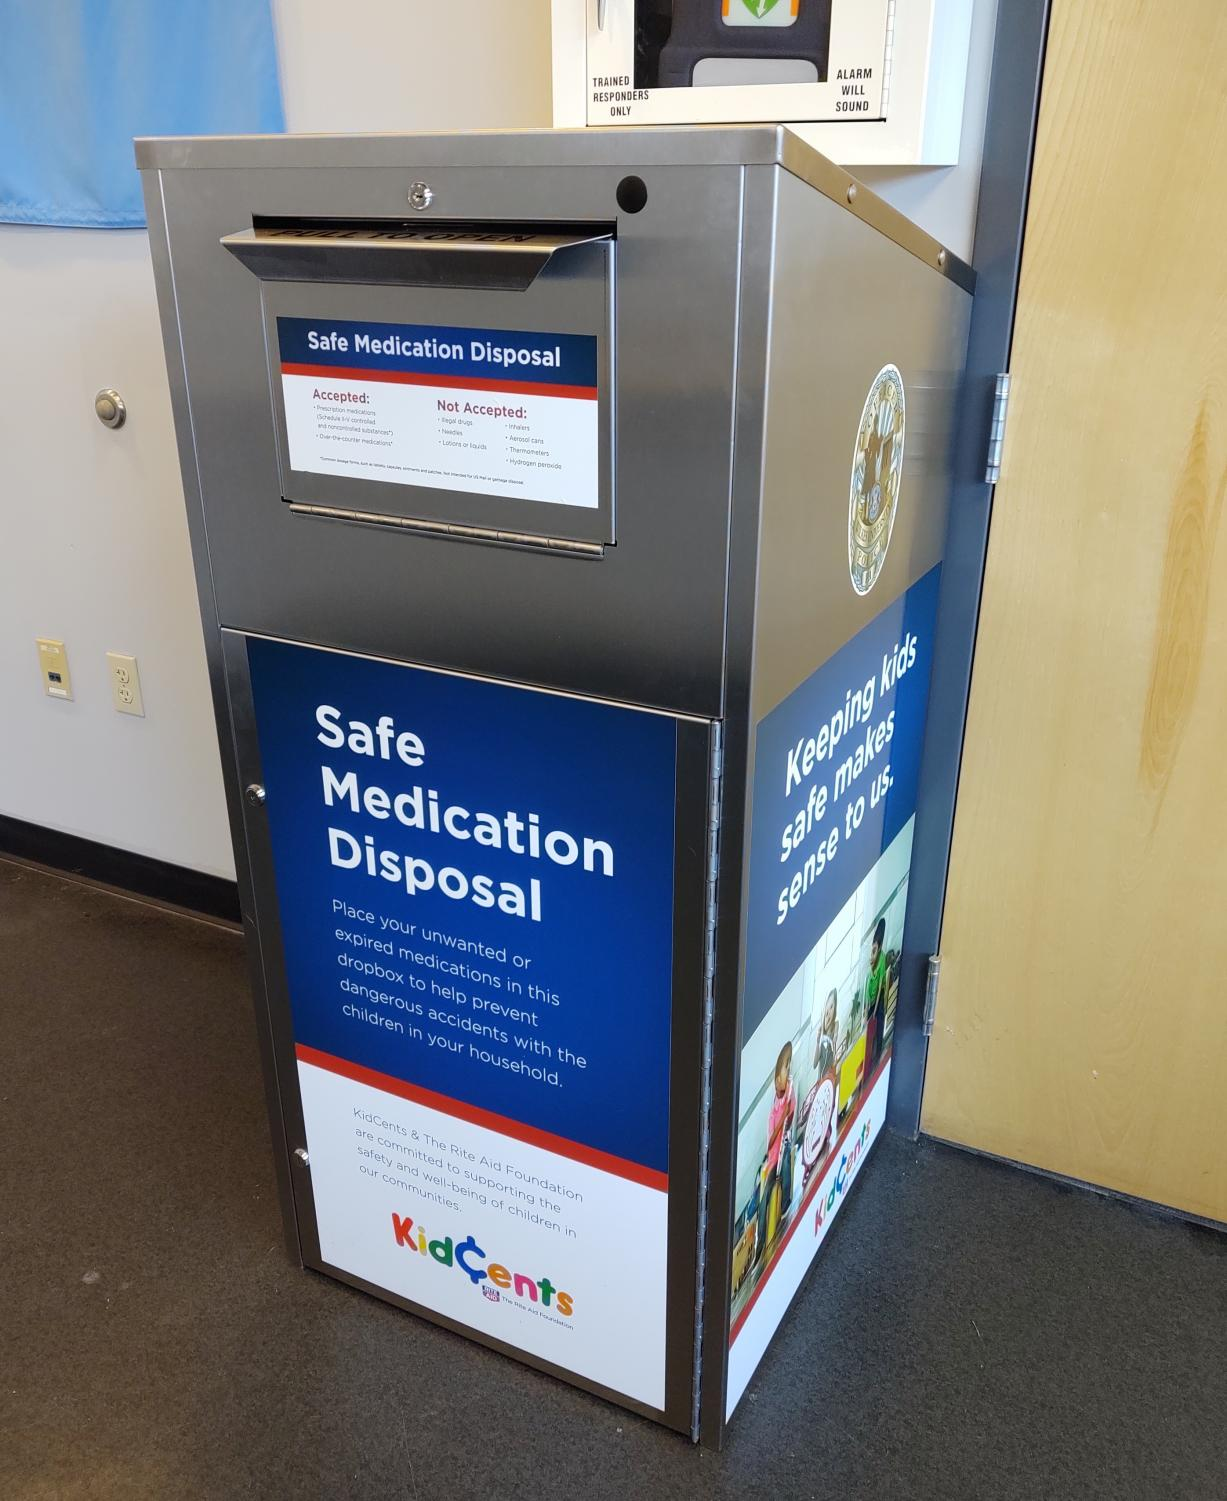 The disposal box is located in the WUPD lobby.